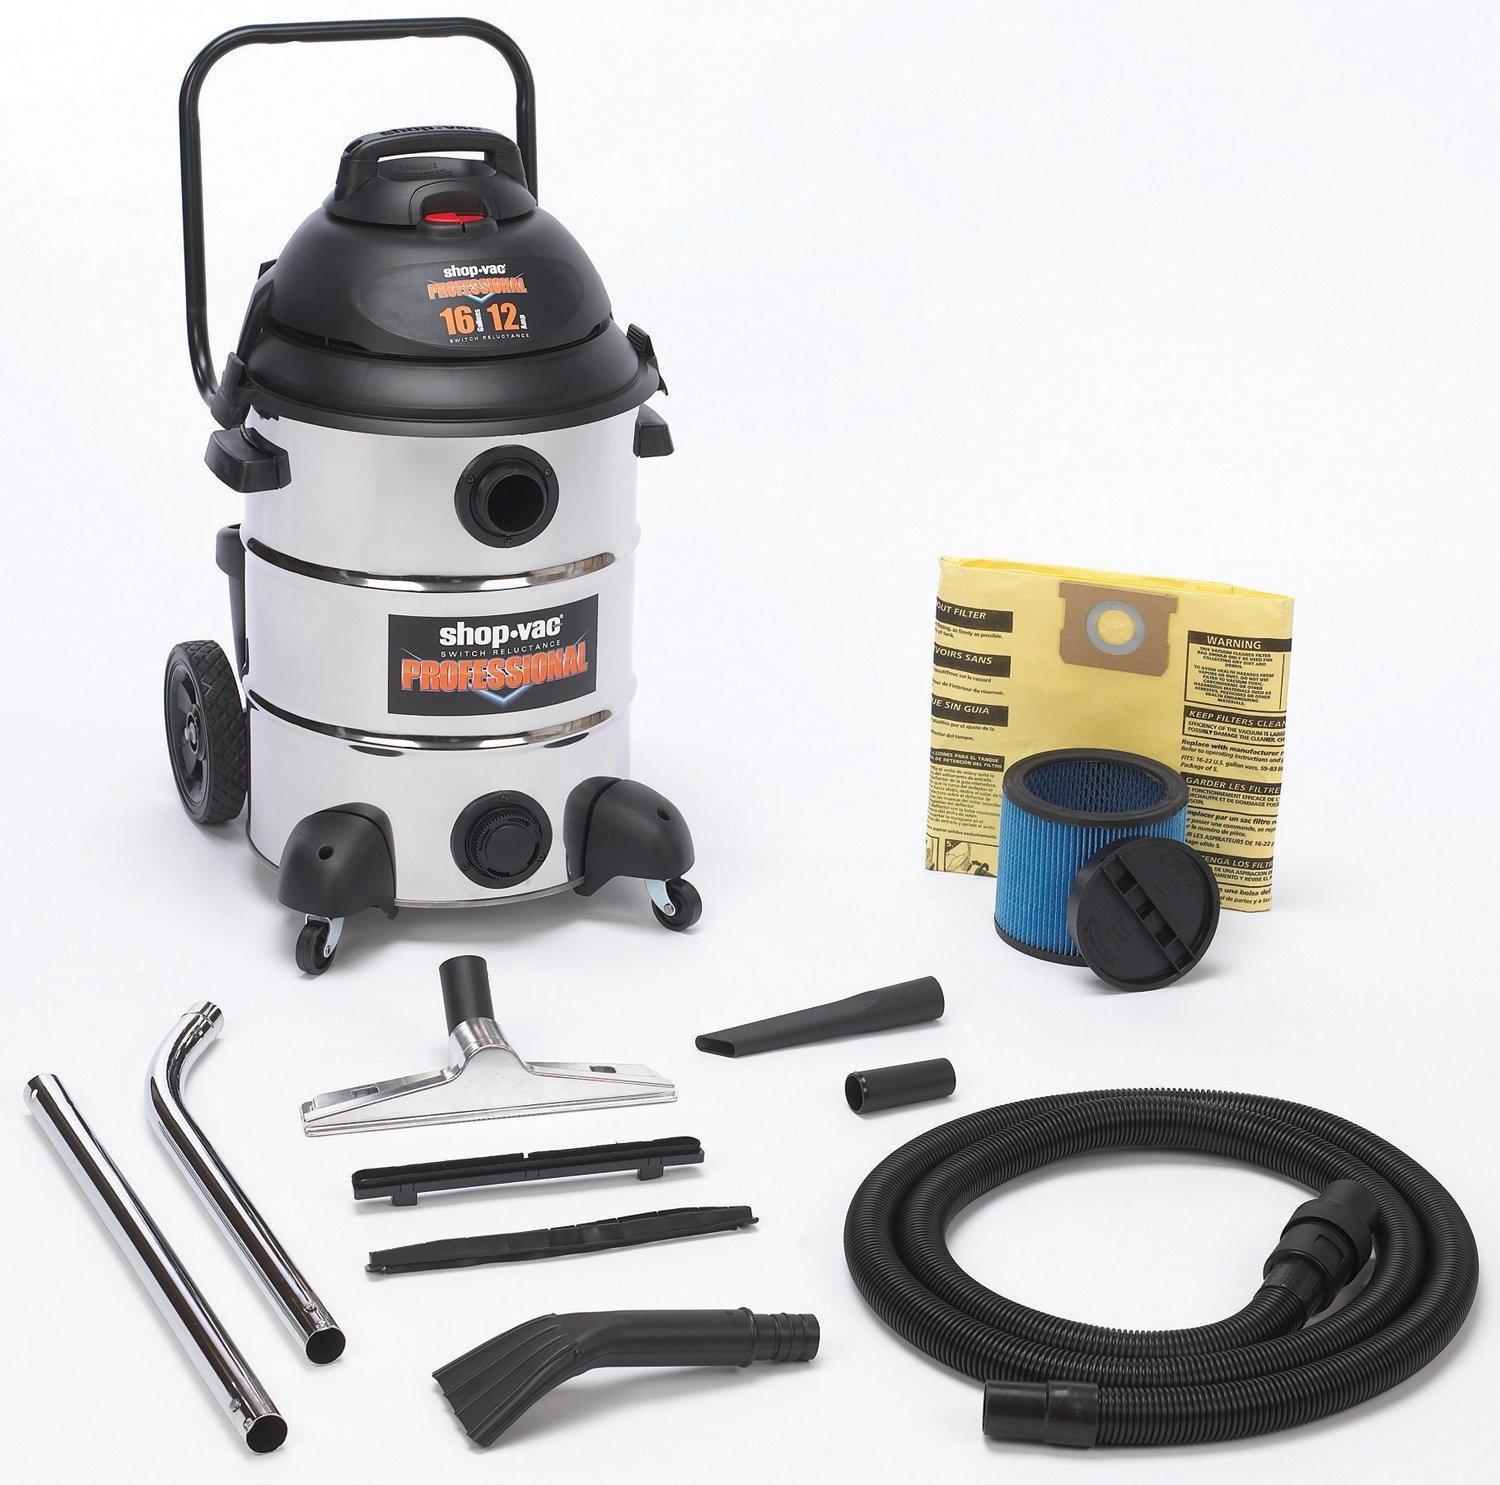 Shop-Vac 9541610 Shop-Vac Professional Stainless Steel Vacuum by Shop-Vac (Image #1)